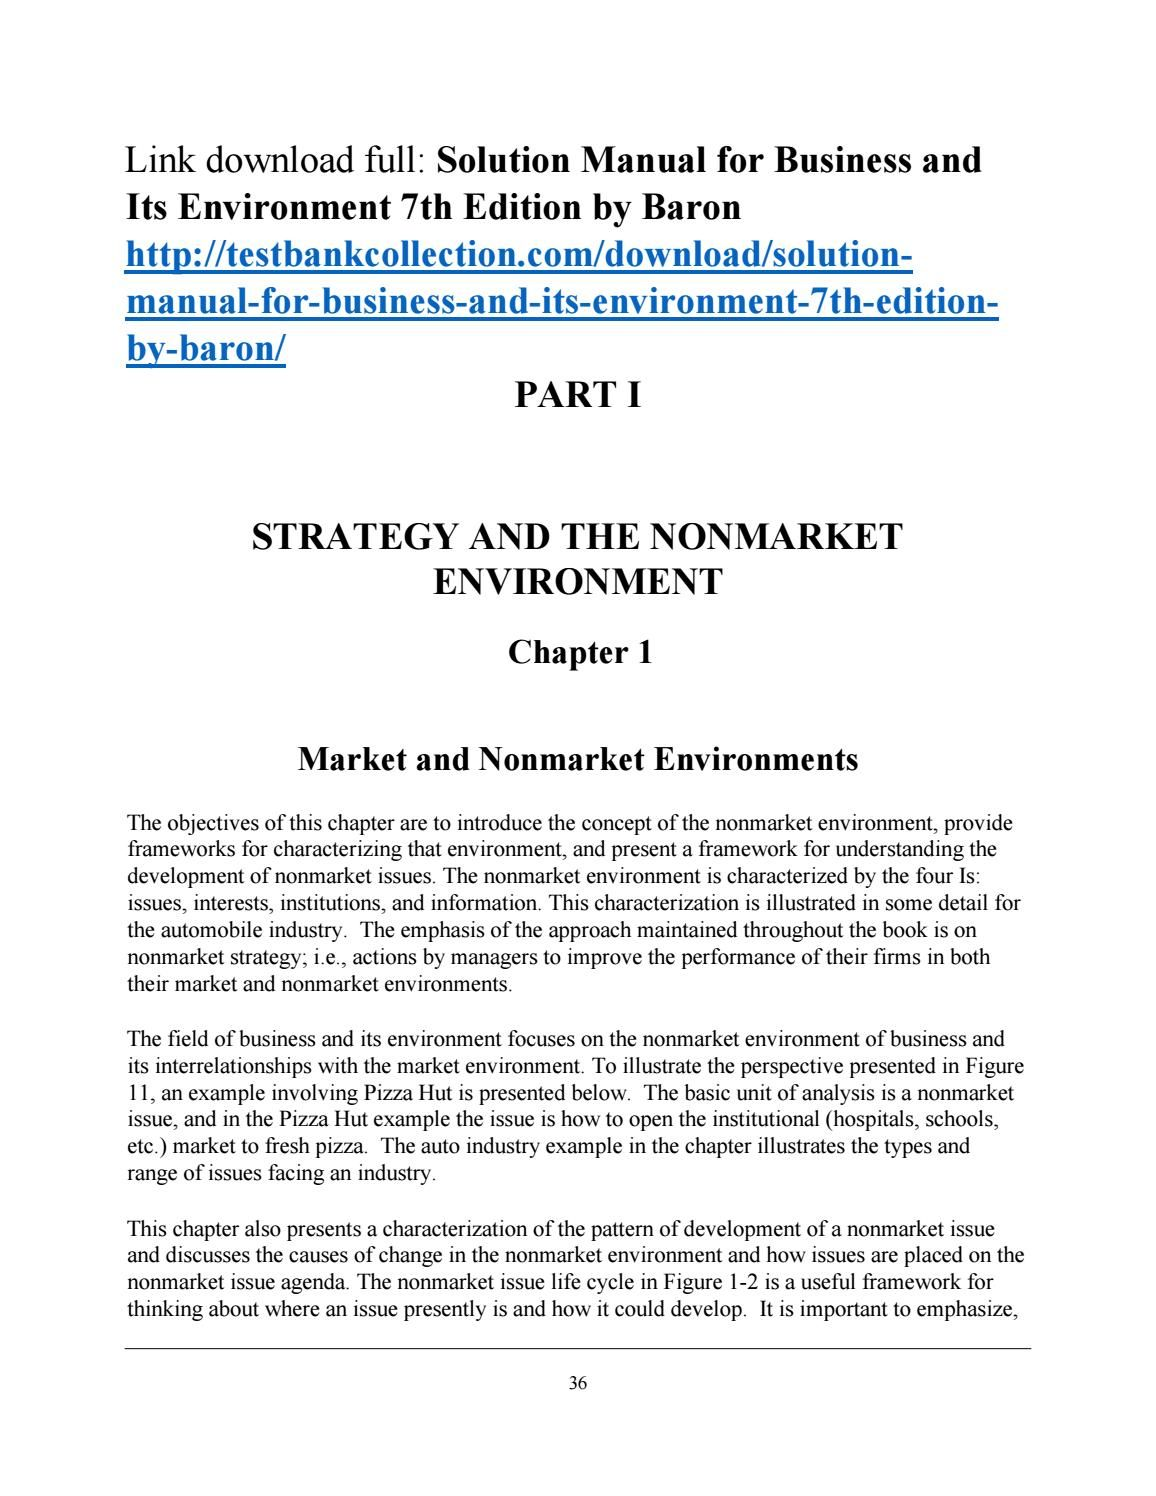 Solution manual for business and its environment 7th edition by baron